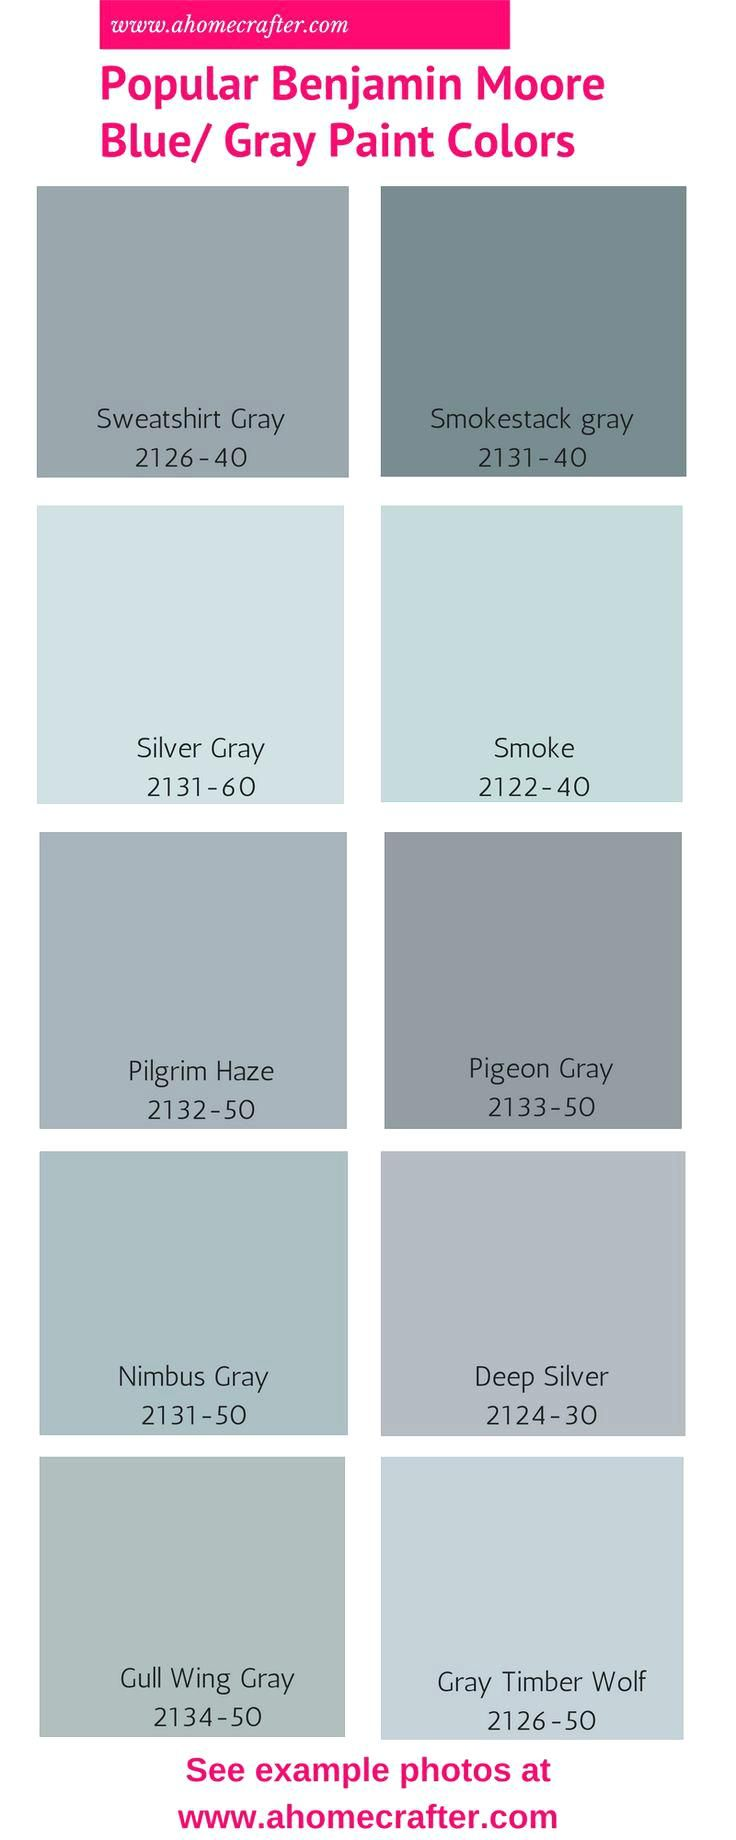 Find This Pin And More On Paint Colorsbest Blue Gray Color Sherwin Williams For Bathroom